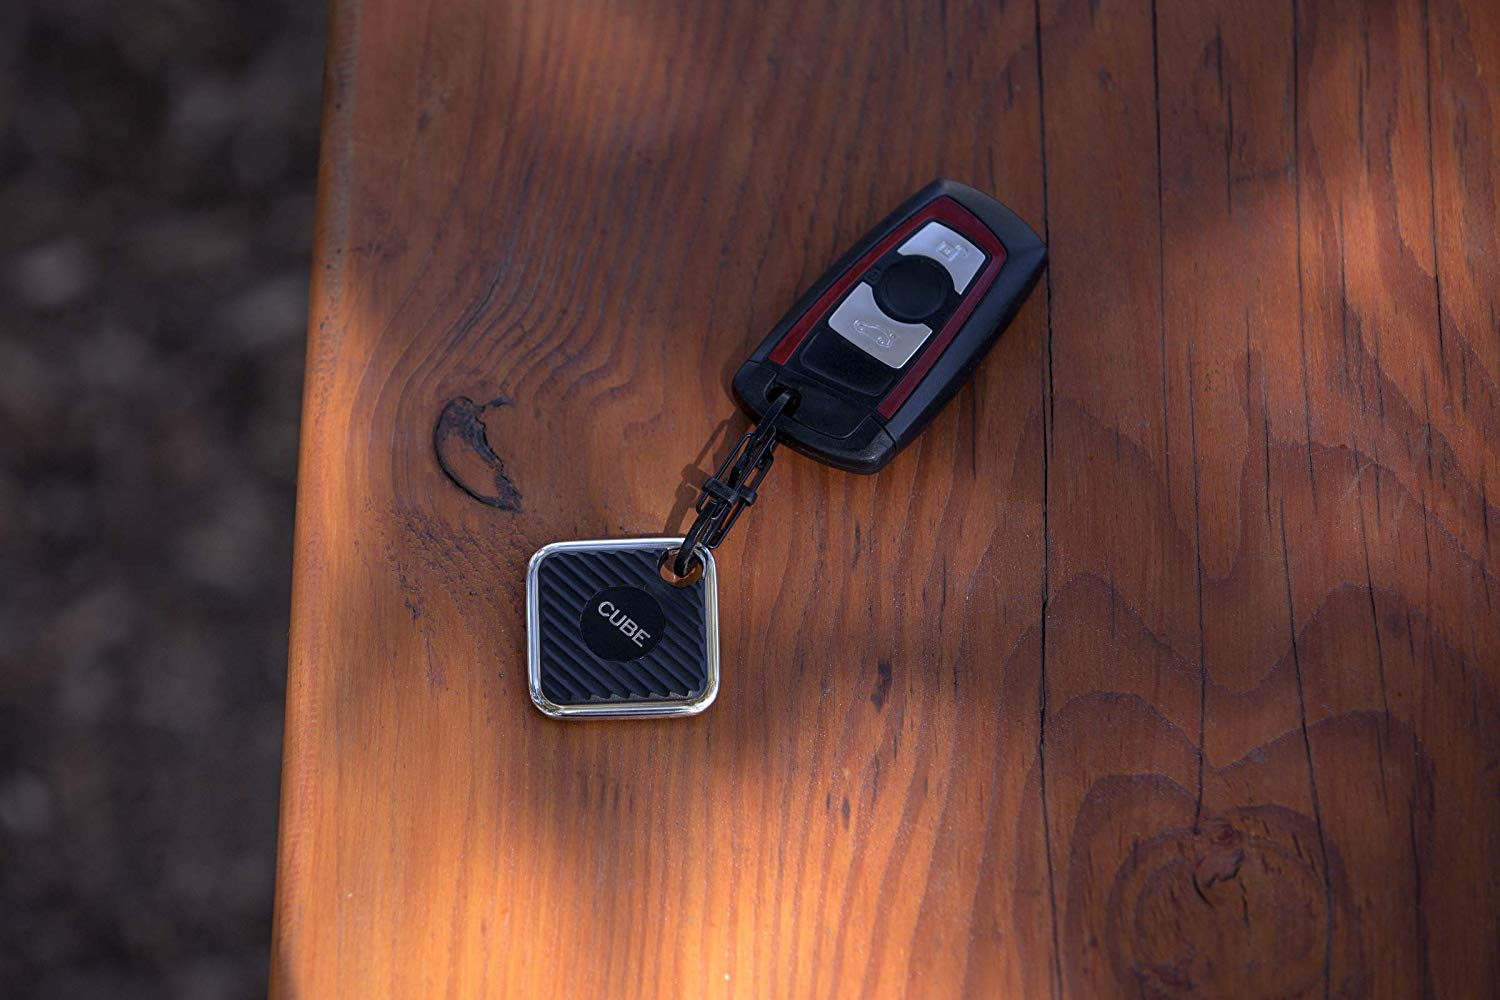 Cube Pro Key Finder Smart Tracker Bluetooth Tracker for Dogs